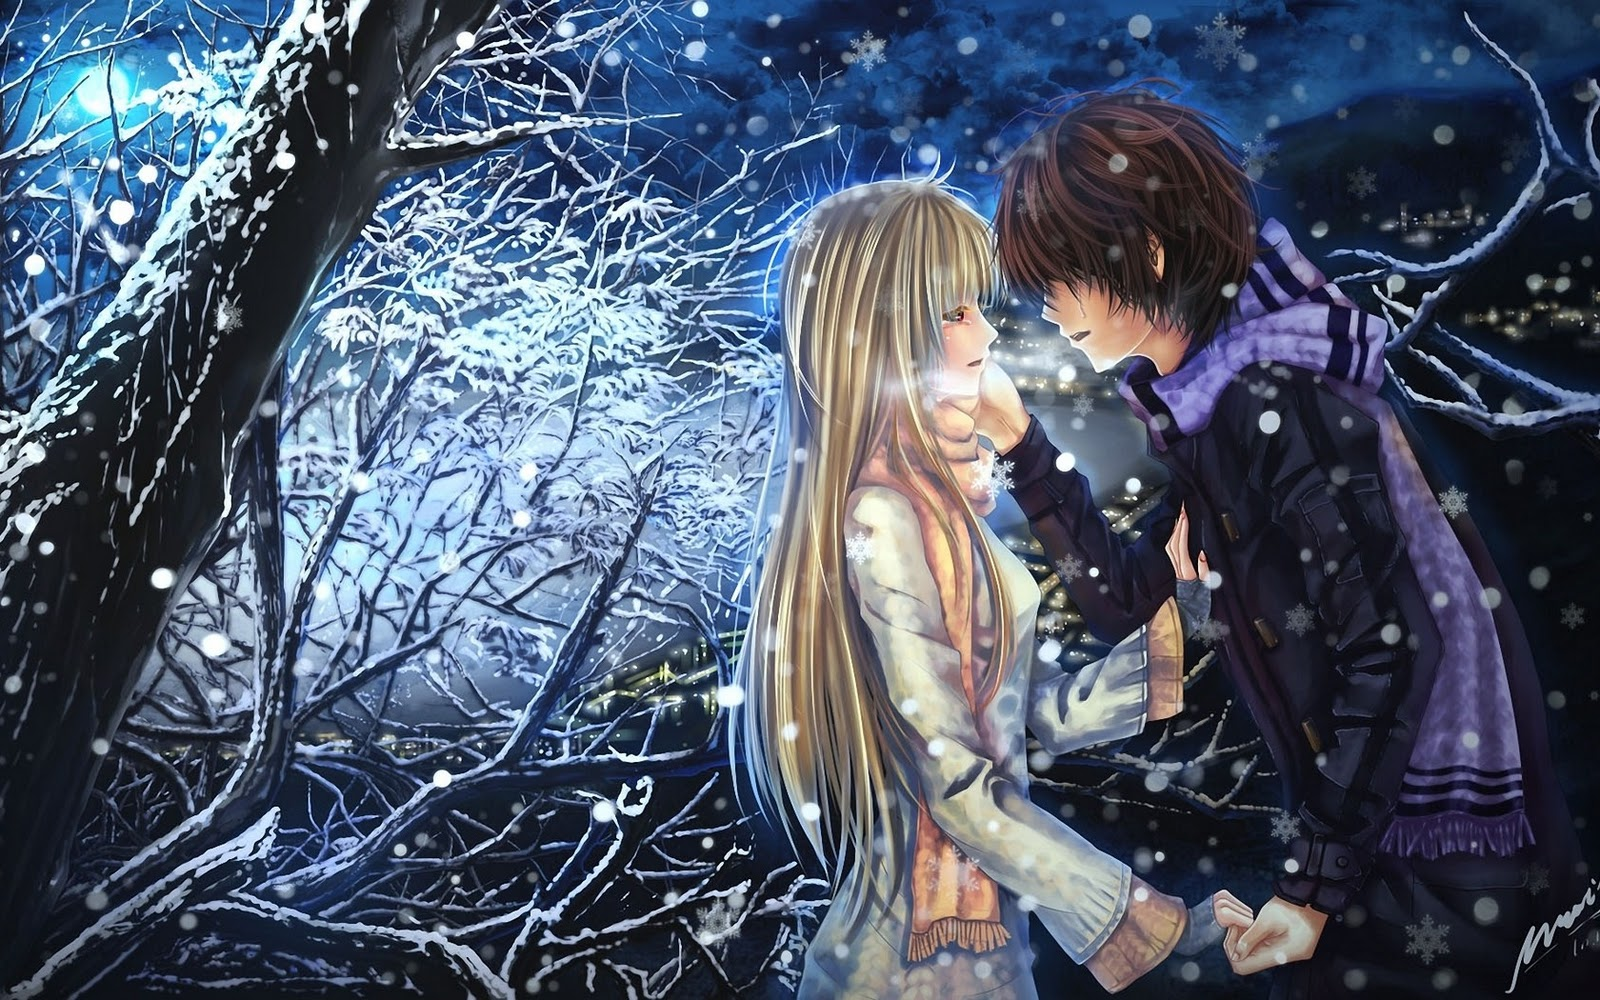 Love Wallpaper Images In Hd : A2Z Wallpapers: Anime couples In Love Wallpapers